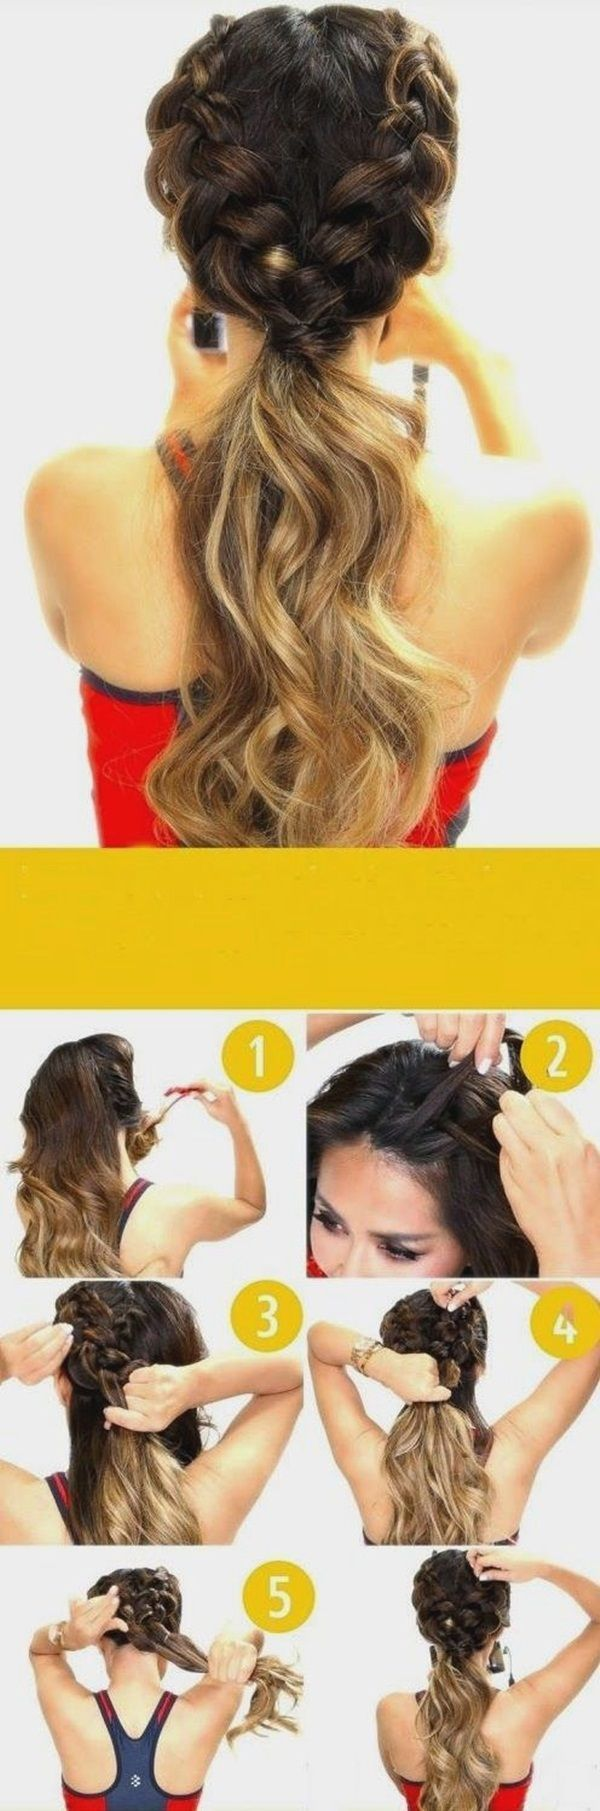 easy hairstyles for schools to try in